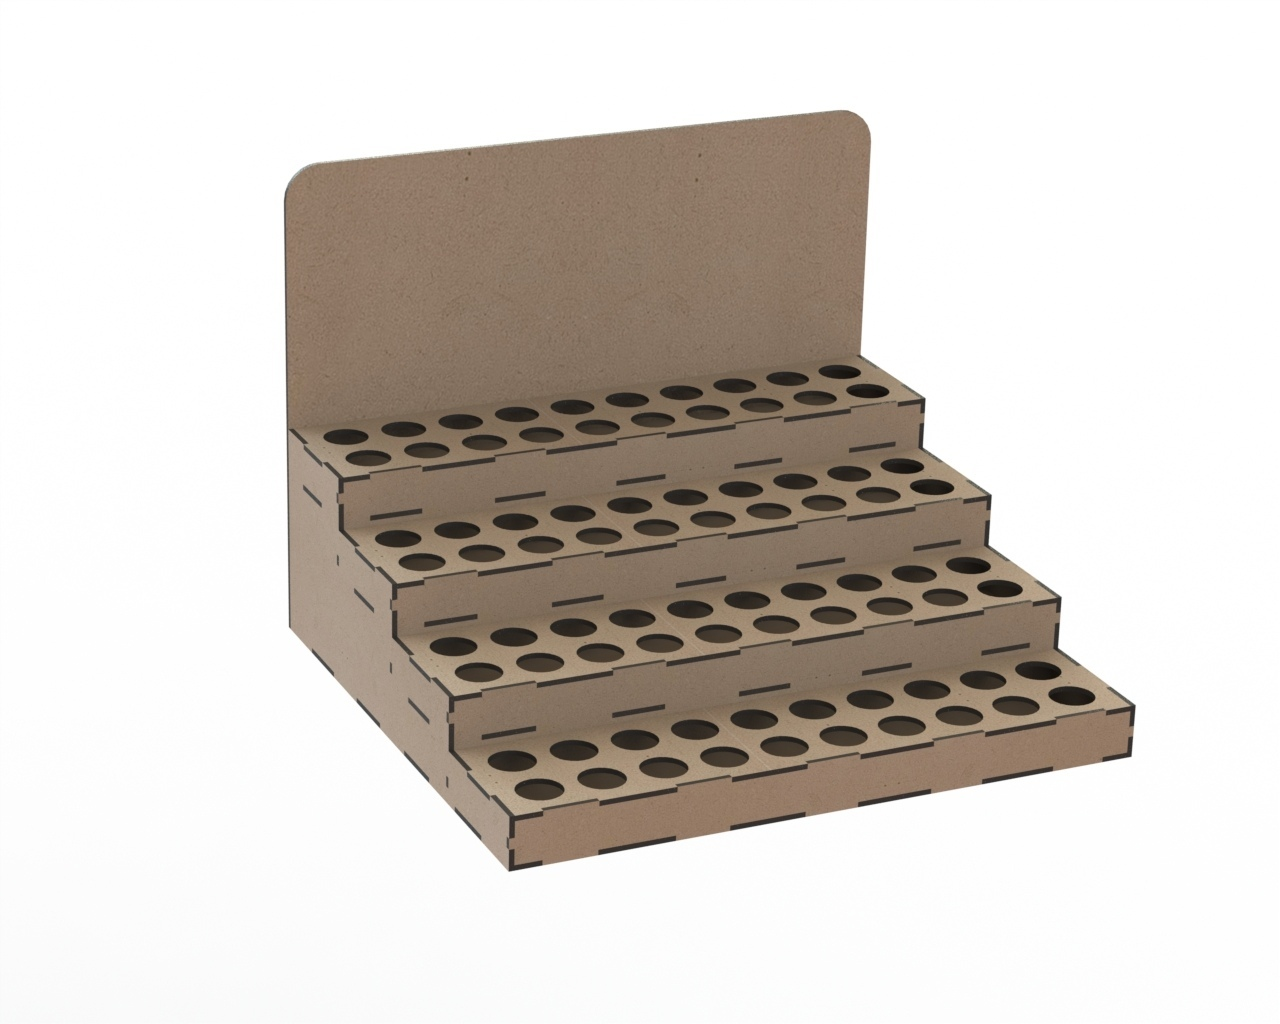 Layout For Laser Cutting Organizer For Model Paints Free CDR Vectors Art